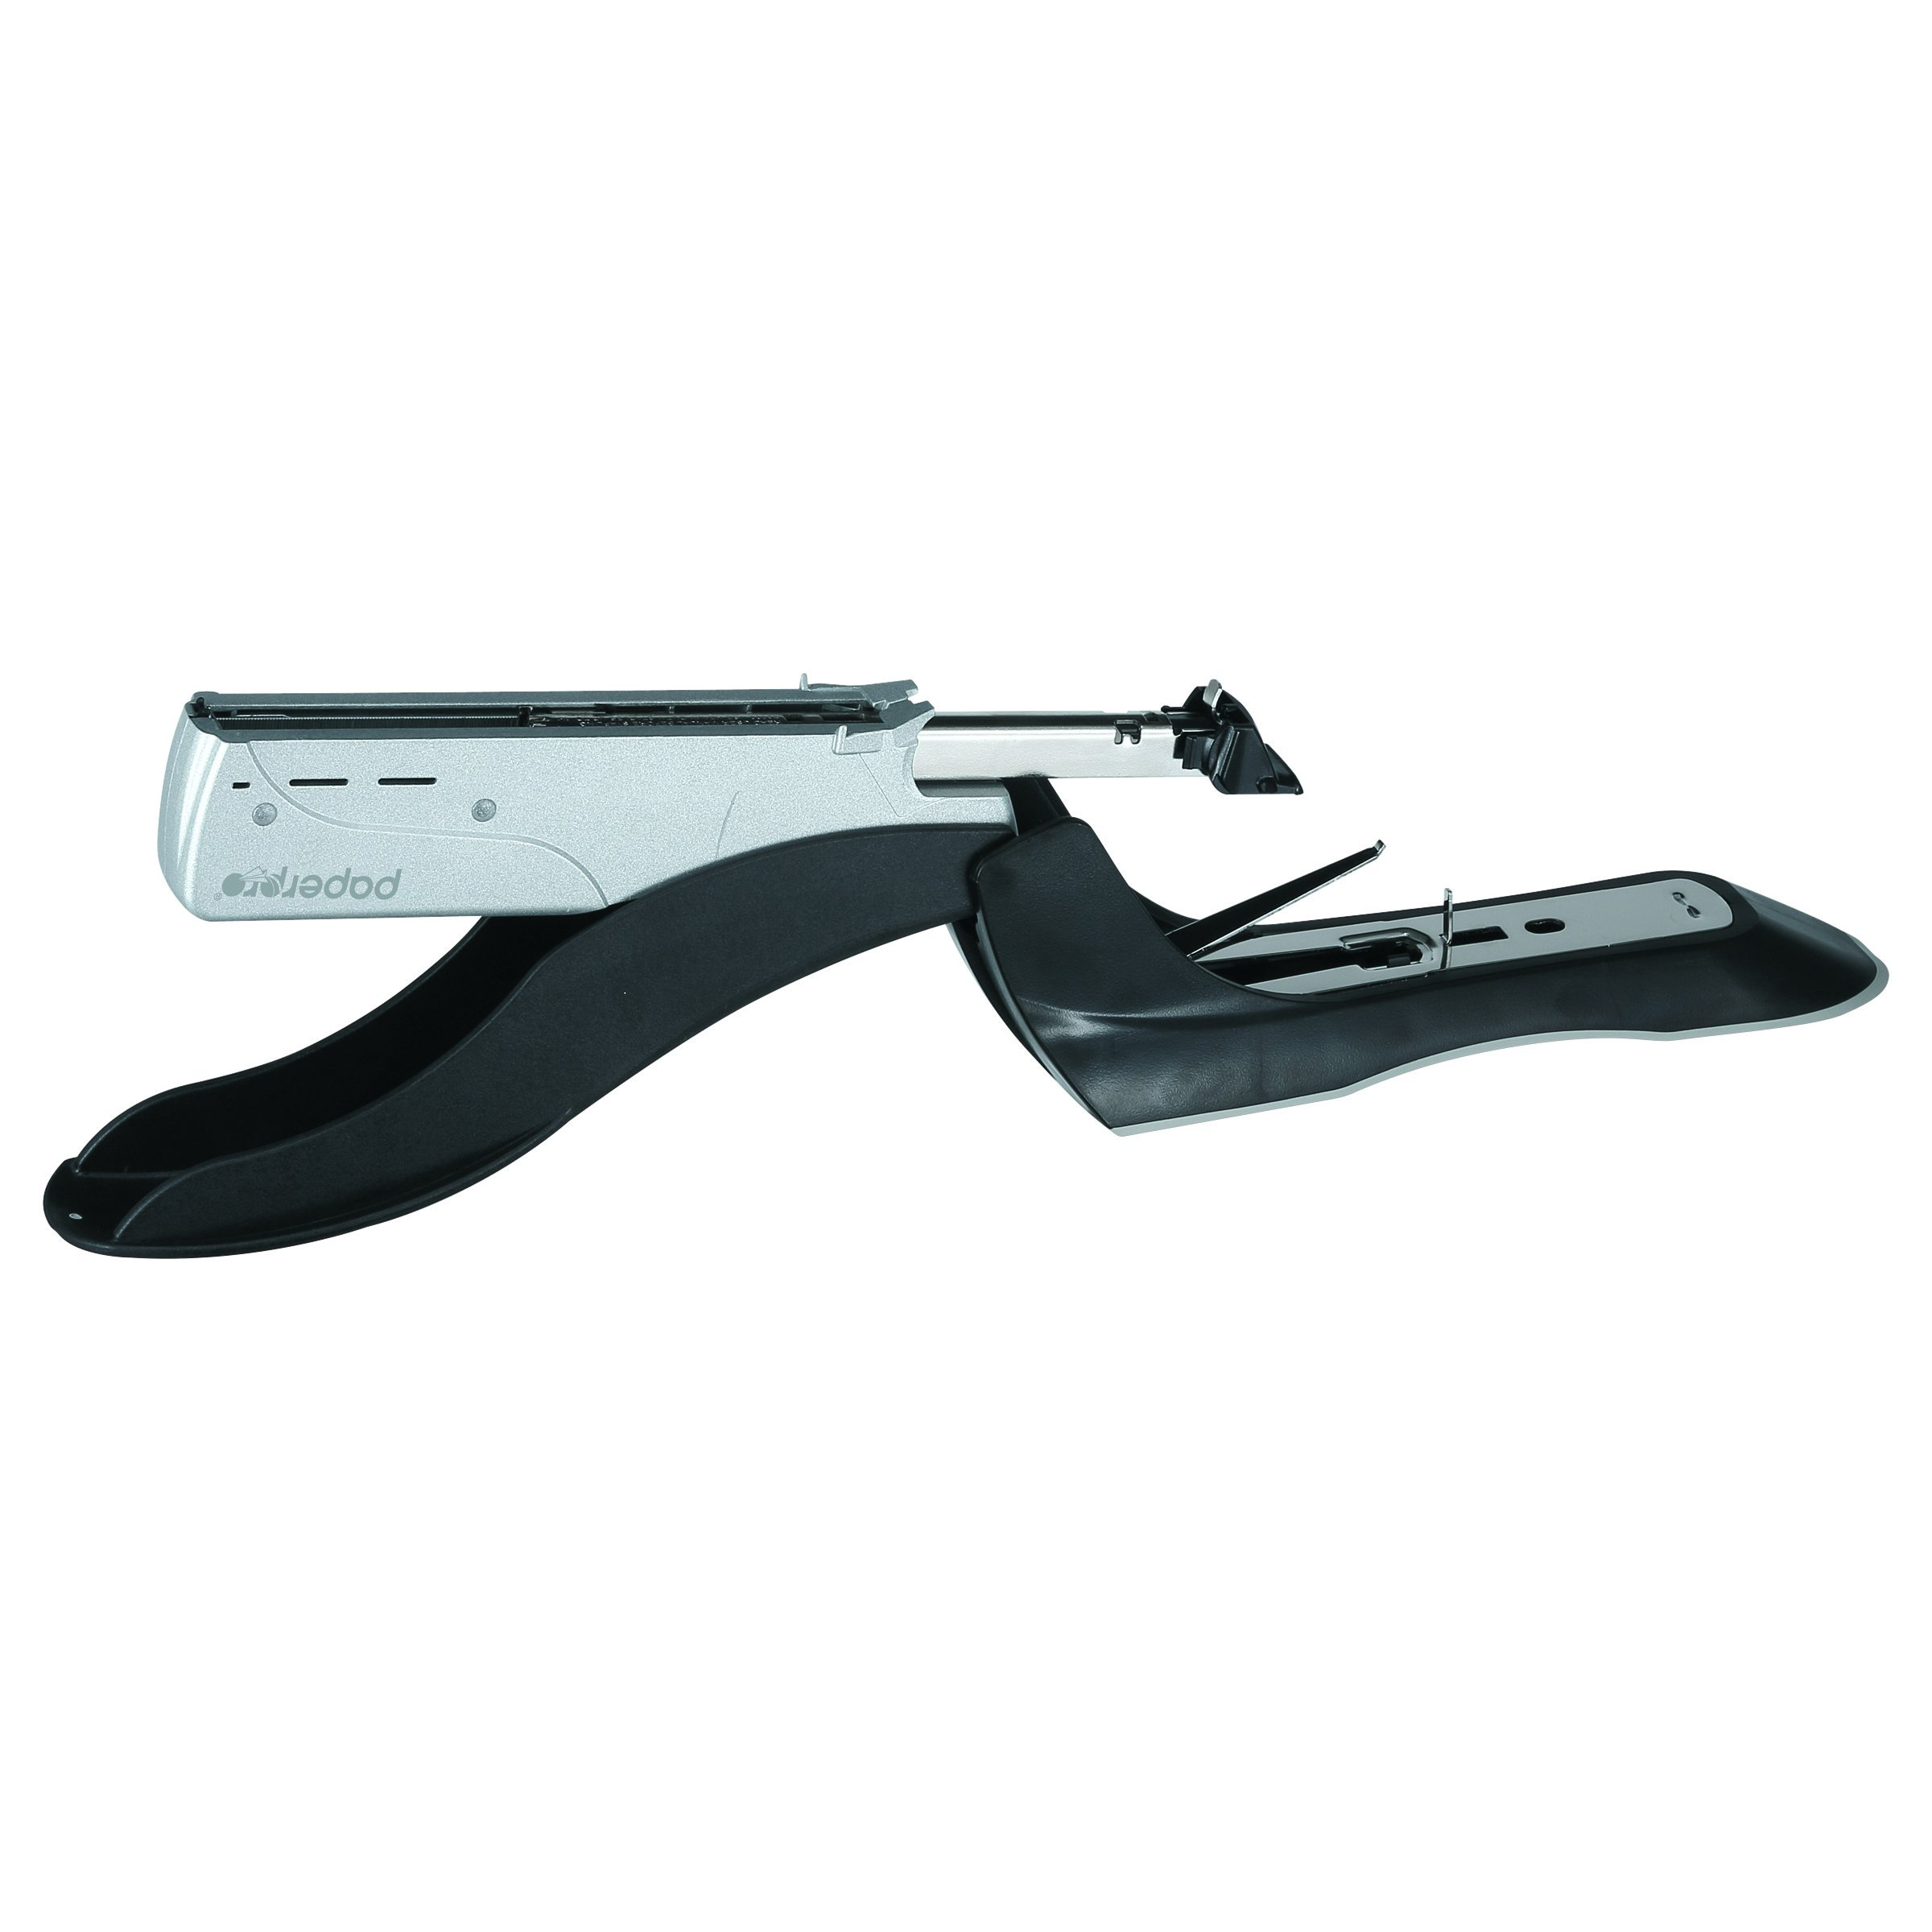 PaperPro inHANCE+100 Heavy Duty Stapler - Two Fingers, No Effort, Spring Powered Stapler - 100 Sheets, Gray (1300) by PaperPro (Image #6)